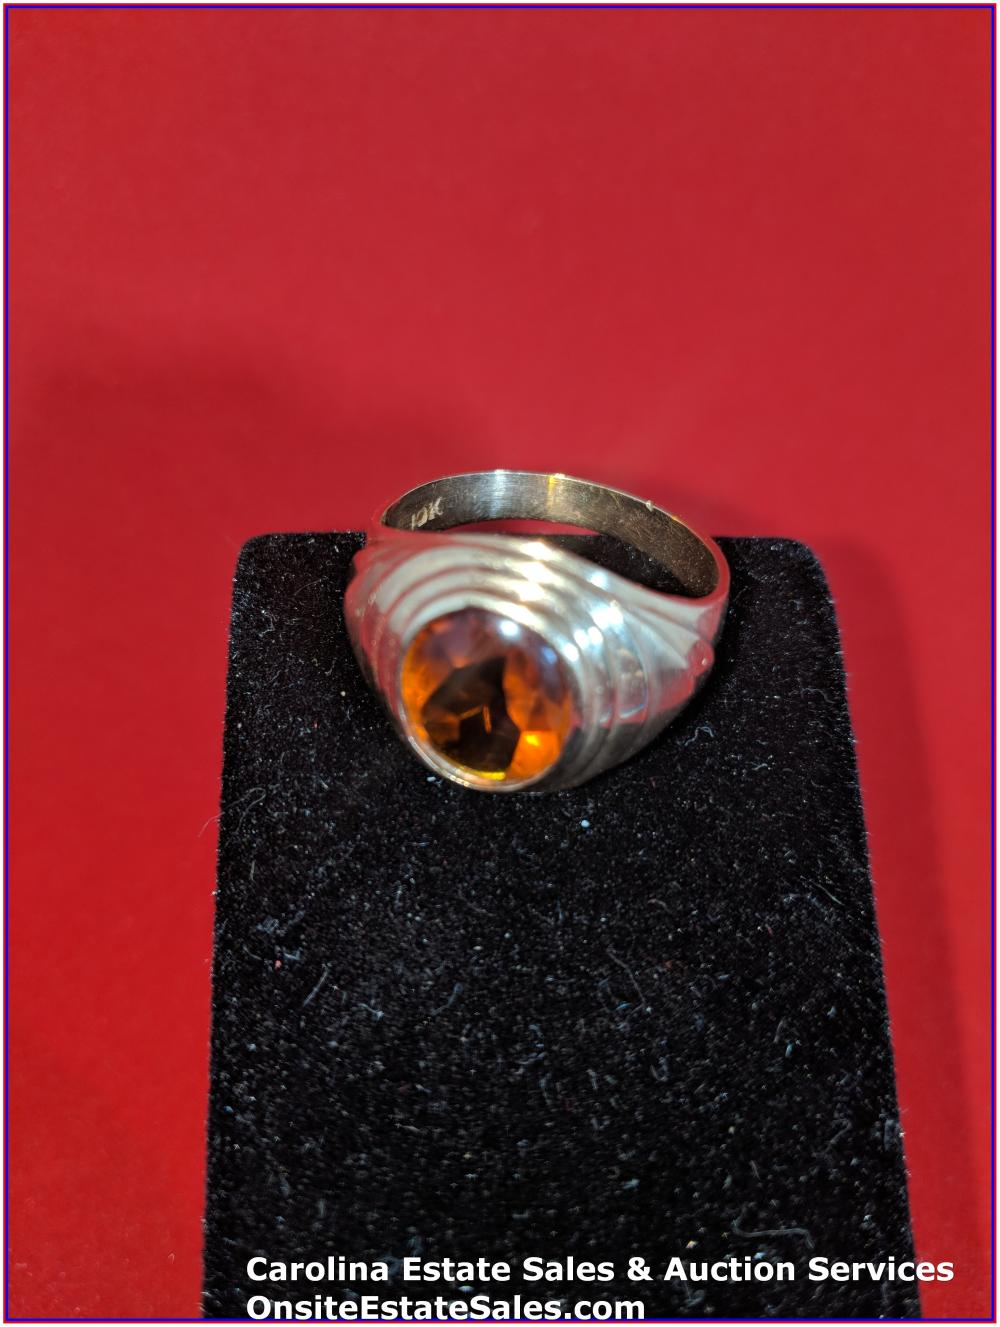 10K Gem Ring Gold 5 Grams Total Weight; with Orange Sapphire Center Stone